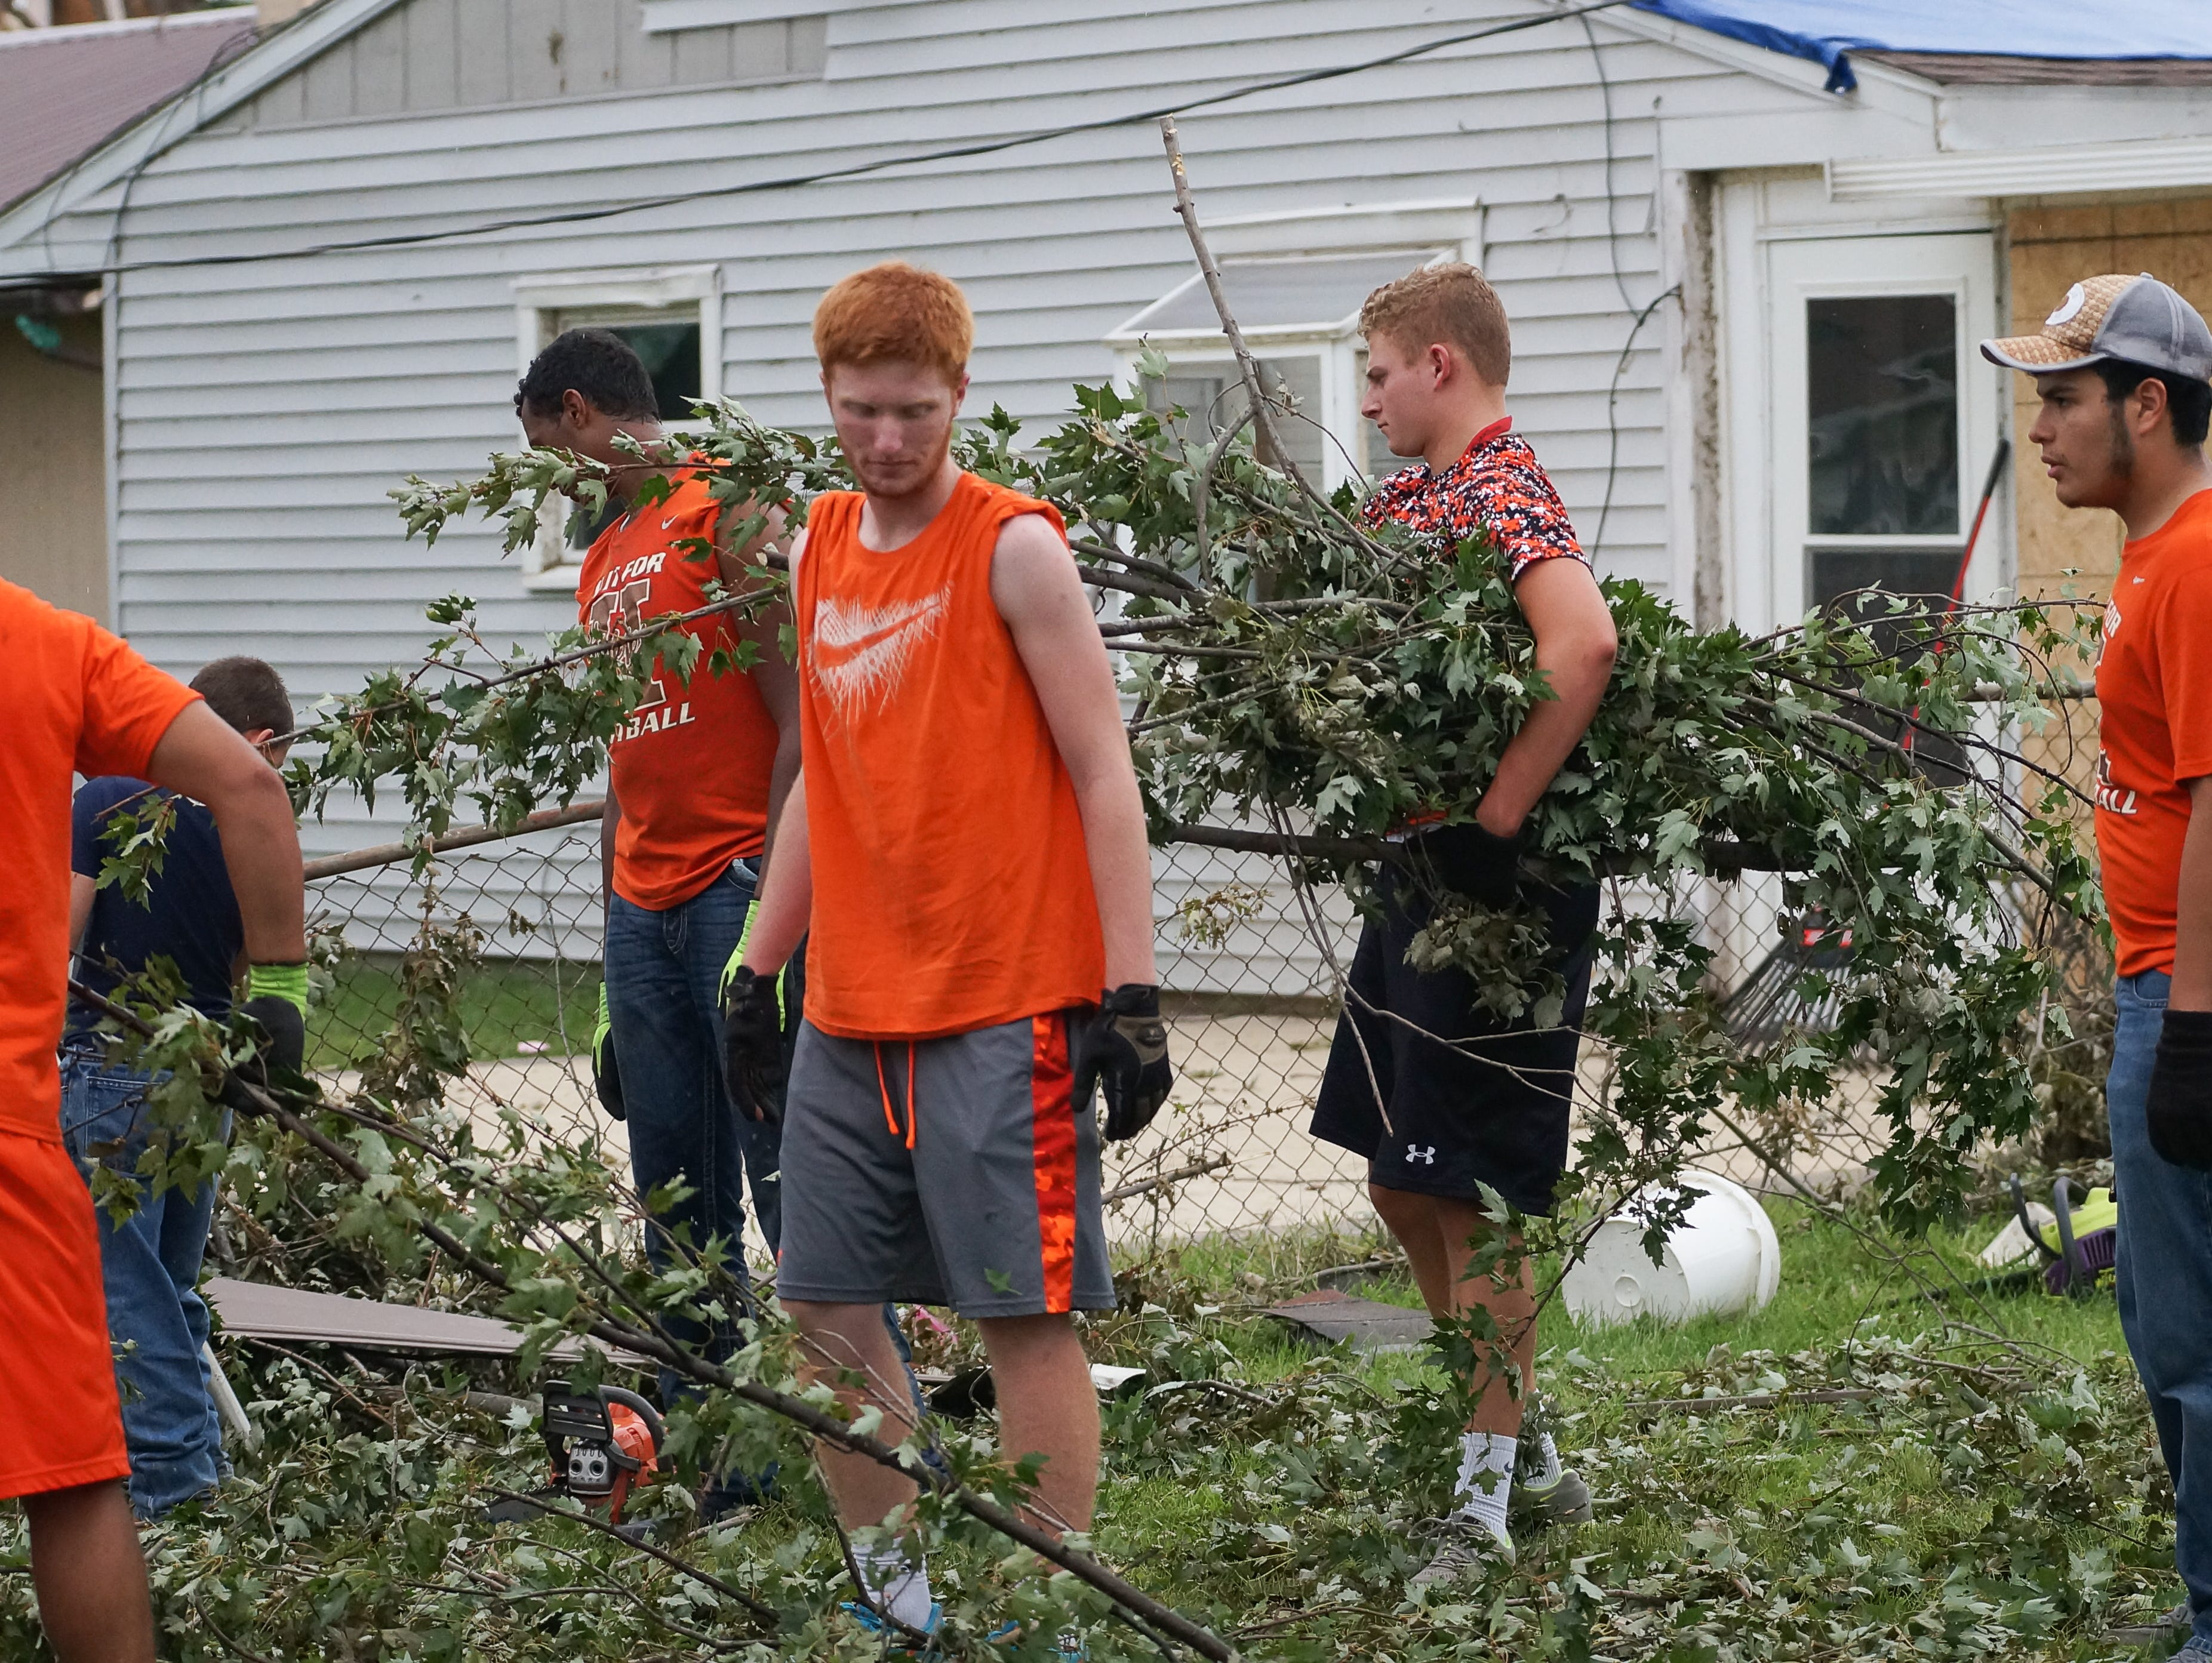 From left to right: Hamilton Heights football players Braydon Denham, Tyson Maylone, Tristian Kinnaman, Camden Dimmock and Steven Zamora helped out with cleanup in Kokomo following last week's tornadoes.